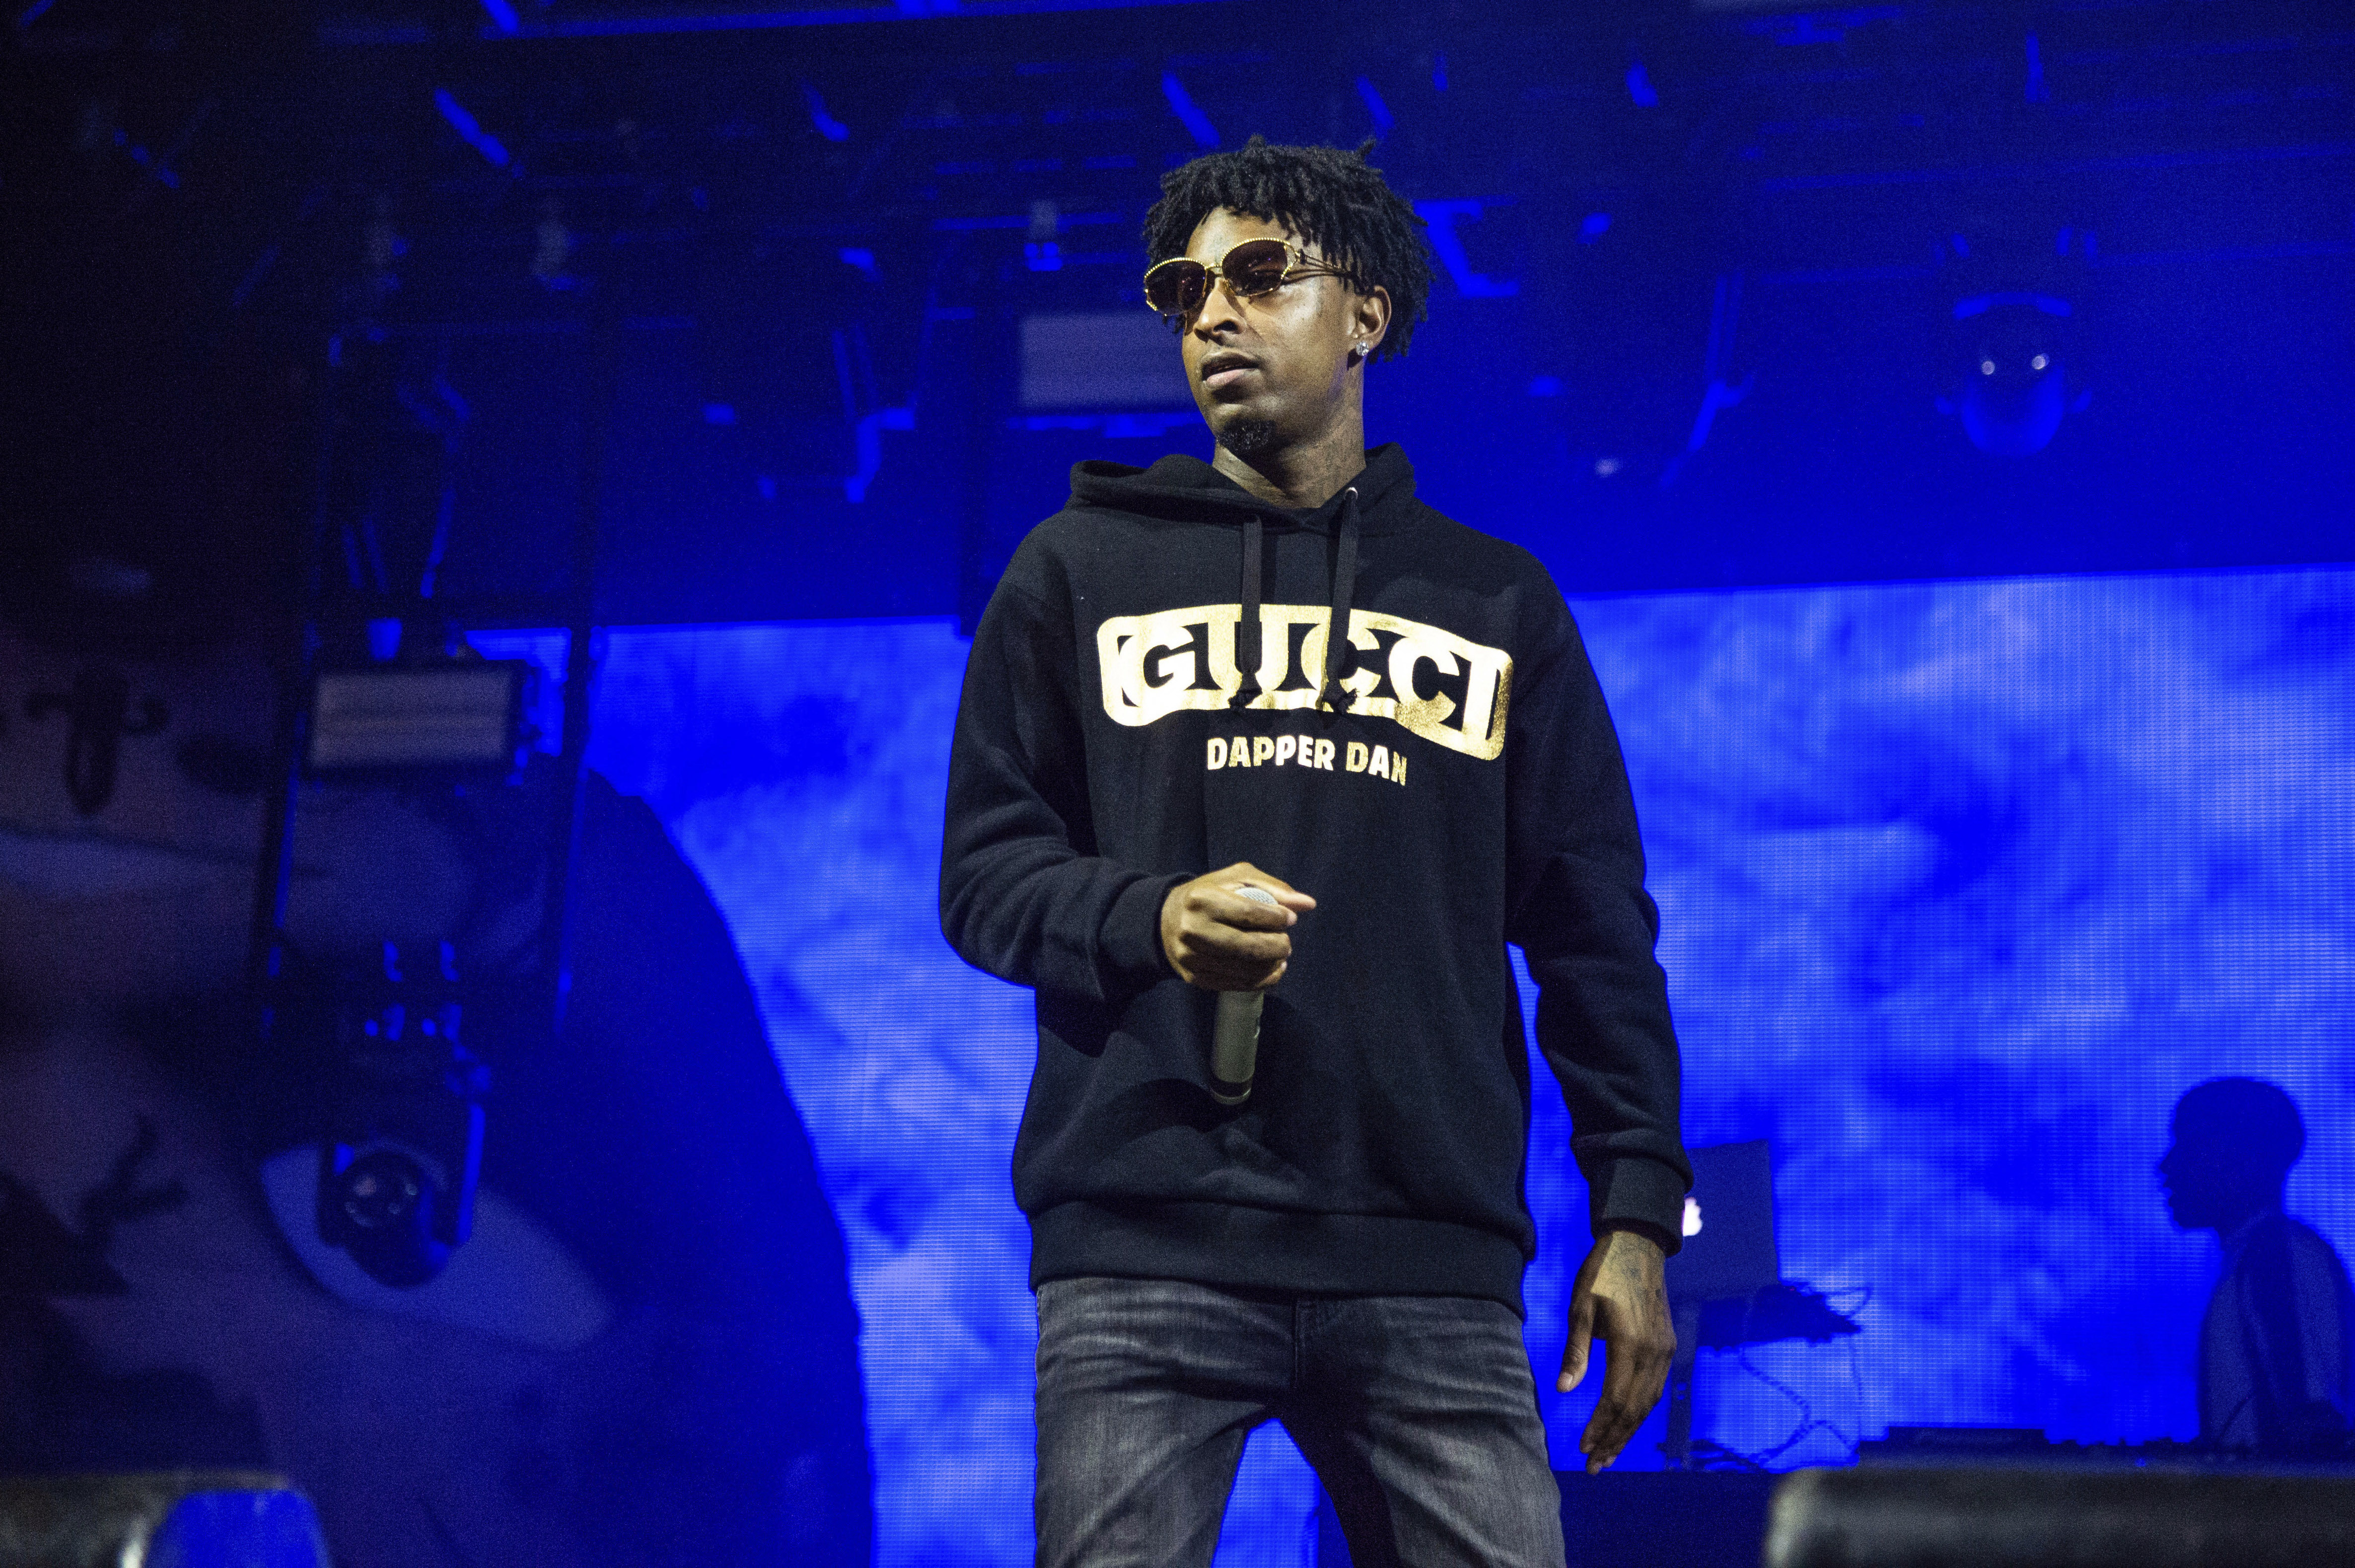 Grammys 2019: 21 Savage Will Likely Miss Show Due to ICE Arrest